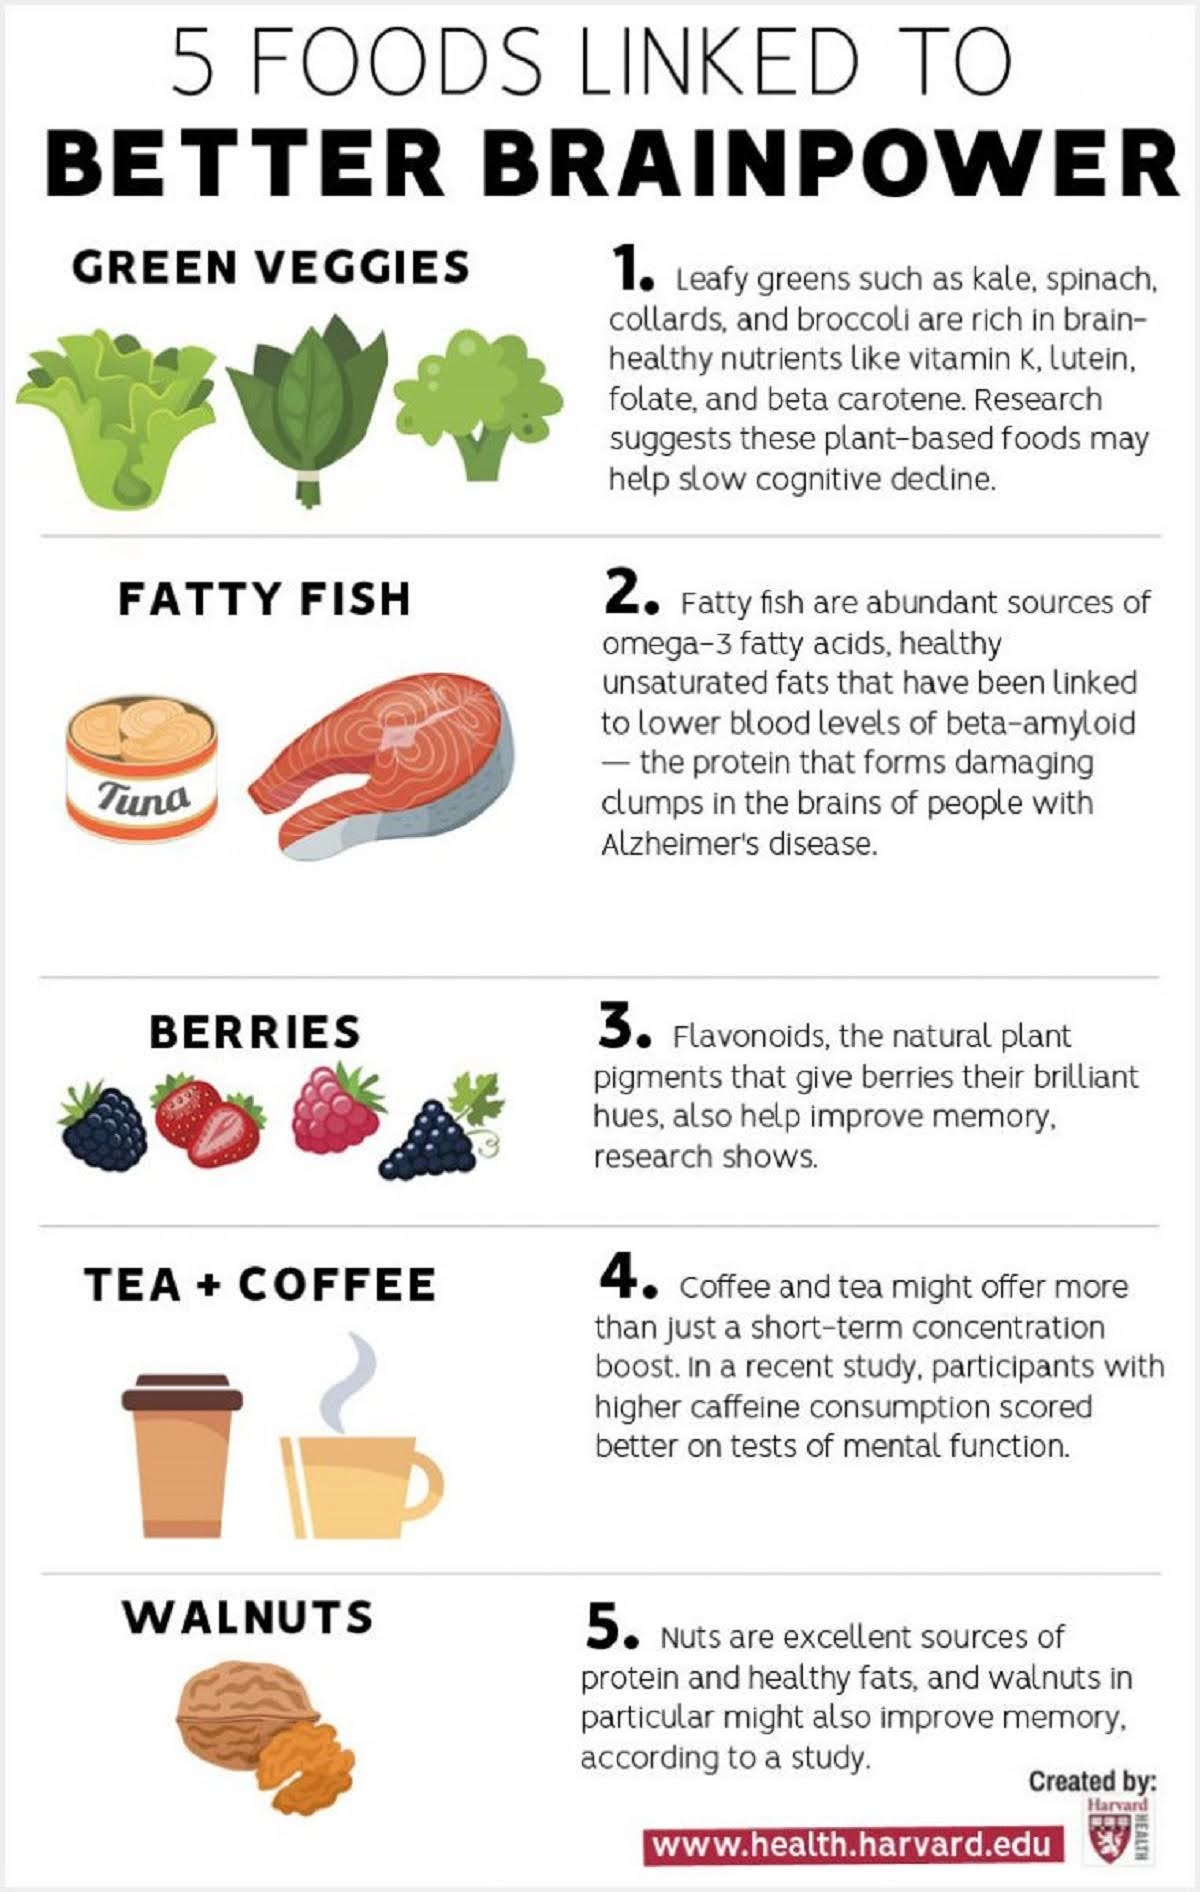 foods-linked-to-better-brainpower-infographic